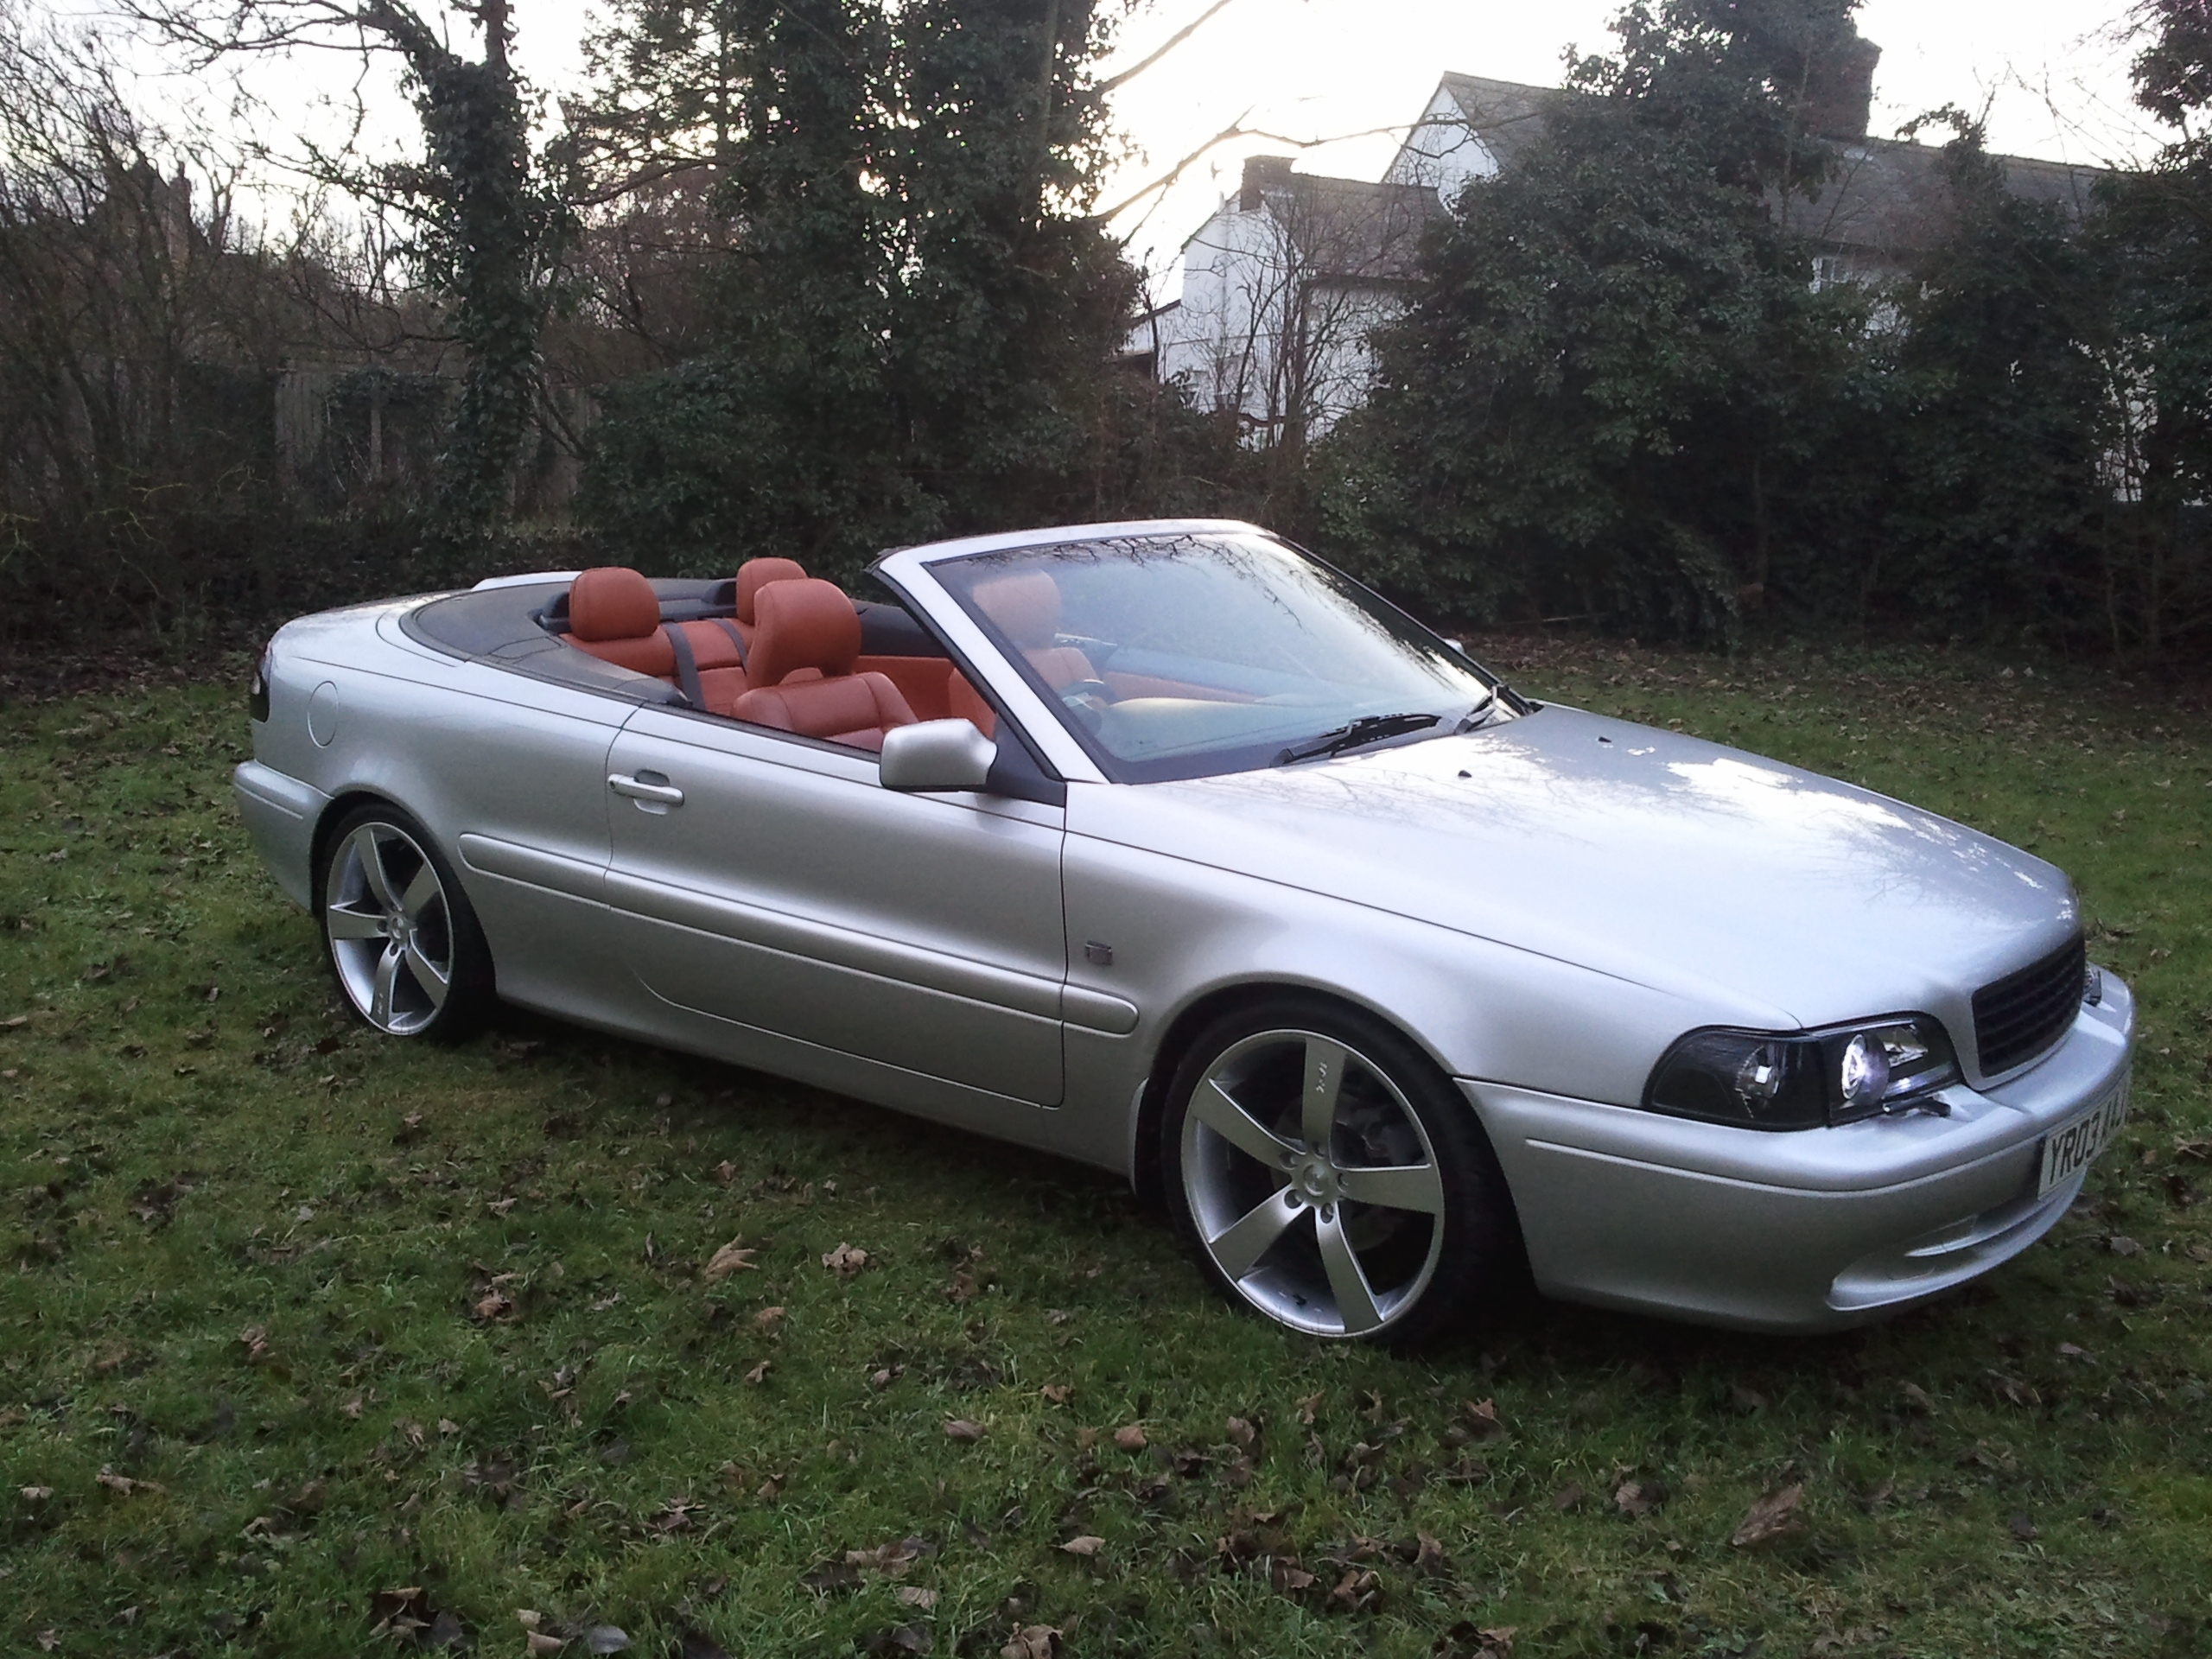 elegant has design with sporty widescreen the high updated safety as roof practical a world steel four convertible seating throttle smart for new adults three leading piece volvo coupe and an